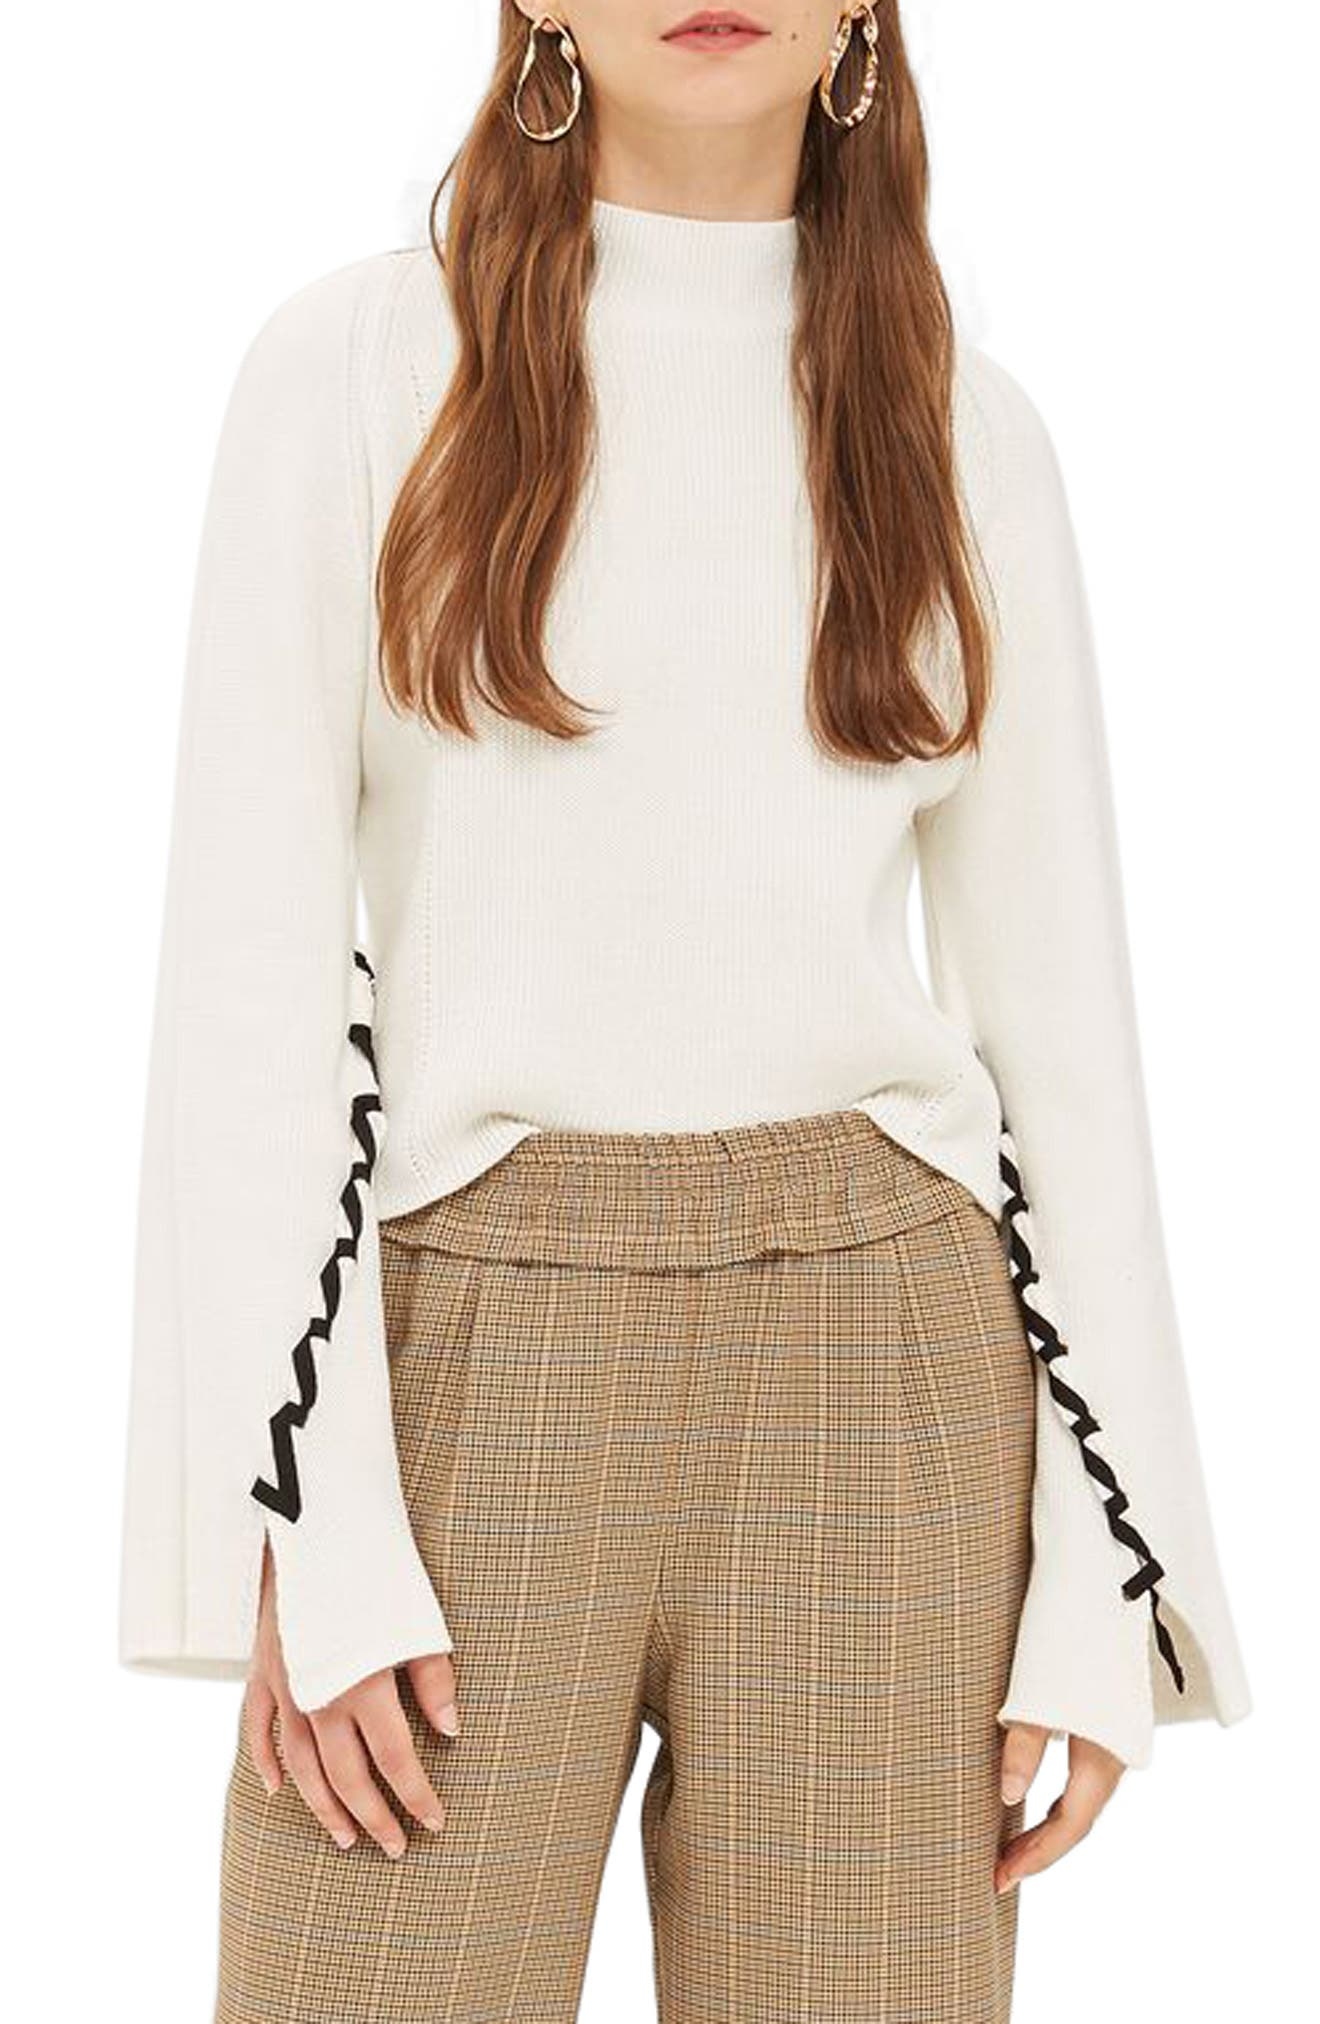 Main Image - Topshop Lace-Up Sleeve Sweater